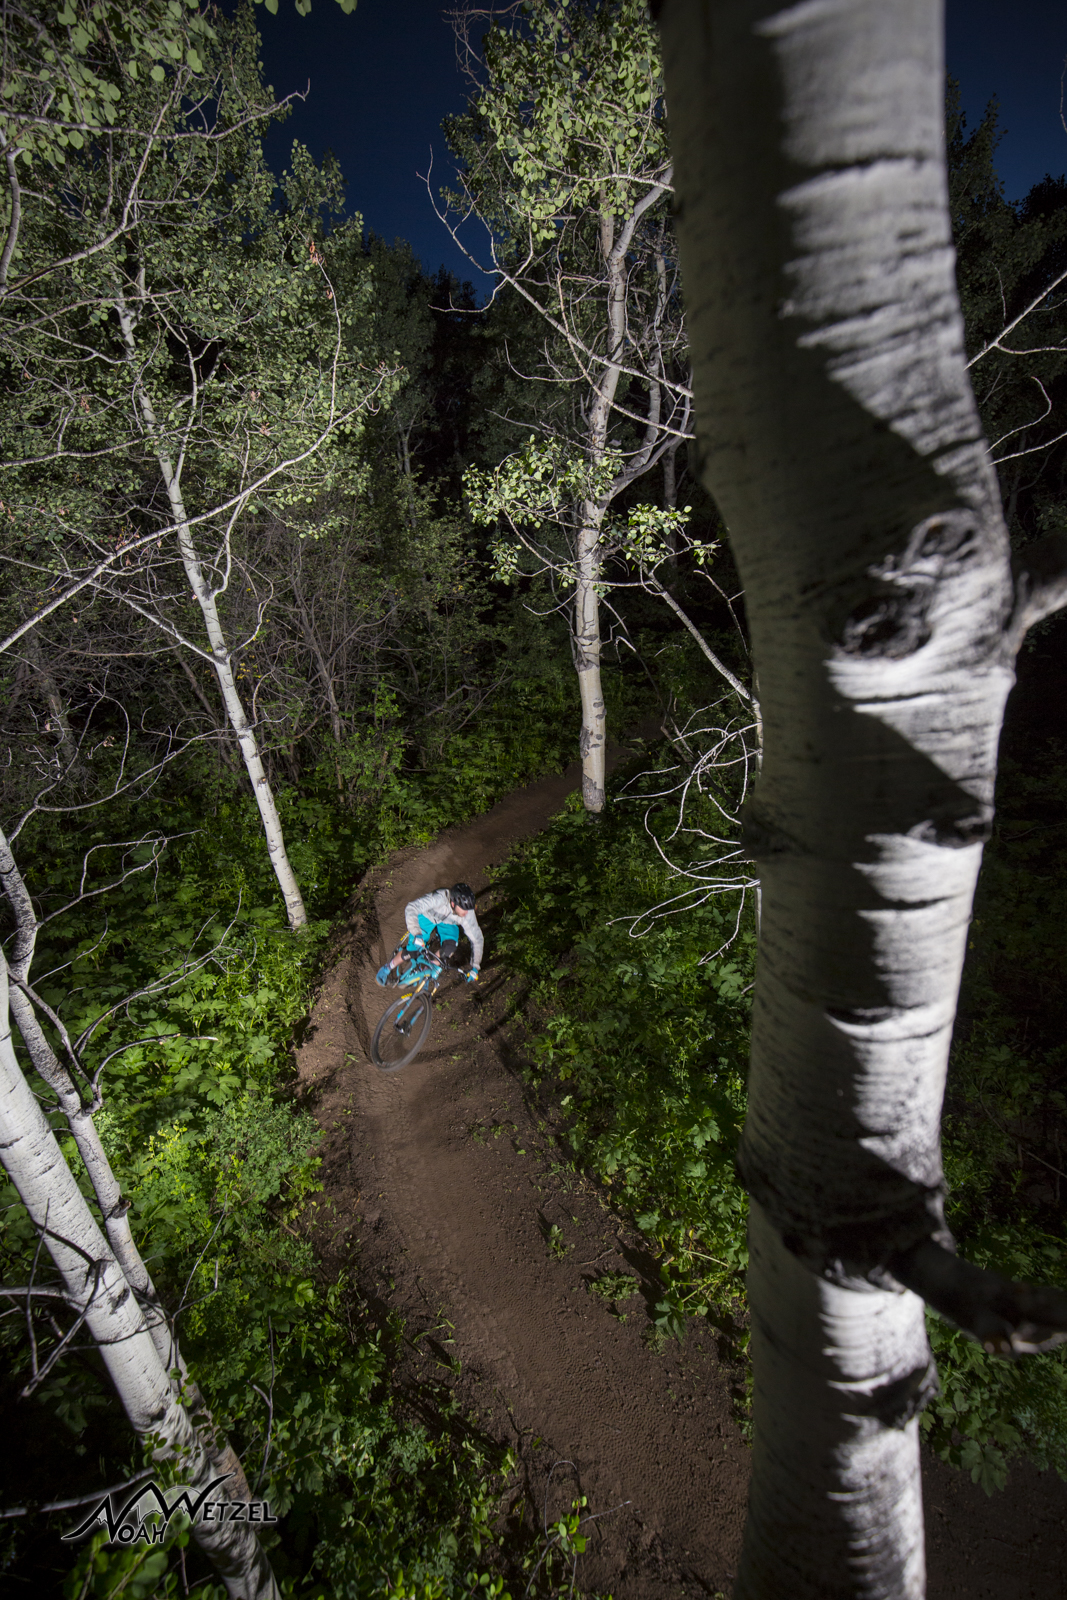 Justin Reiter riding NPR on Emerald Mountain. Steamboat Springs, Colorado.